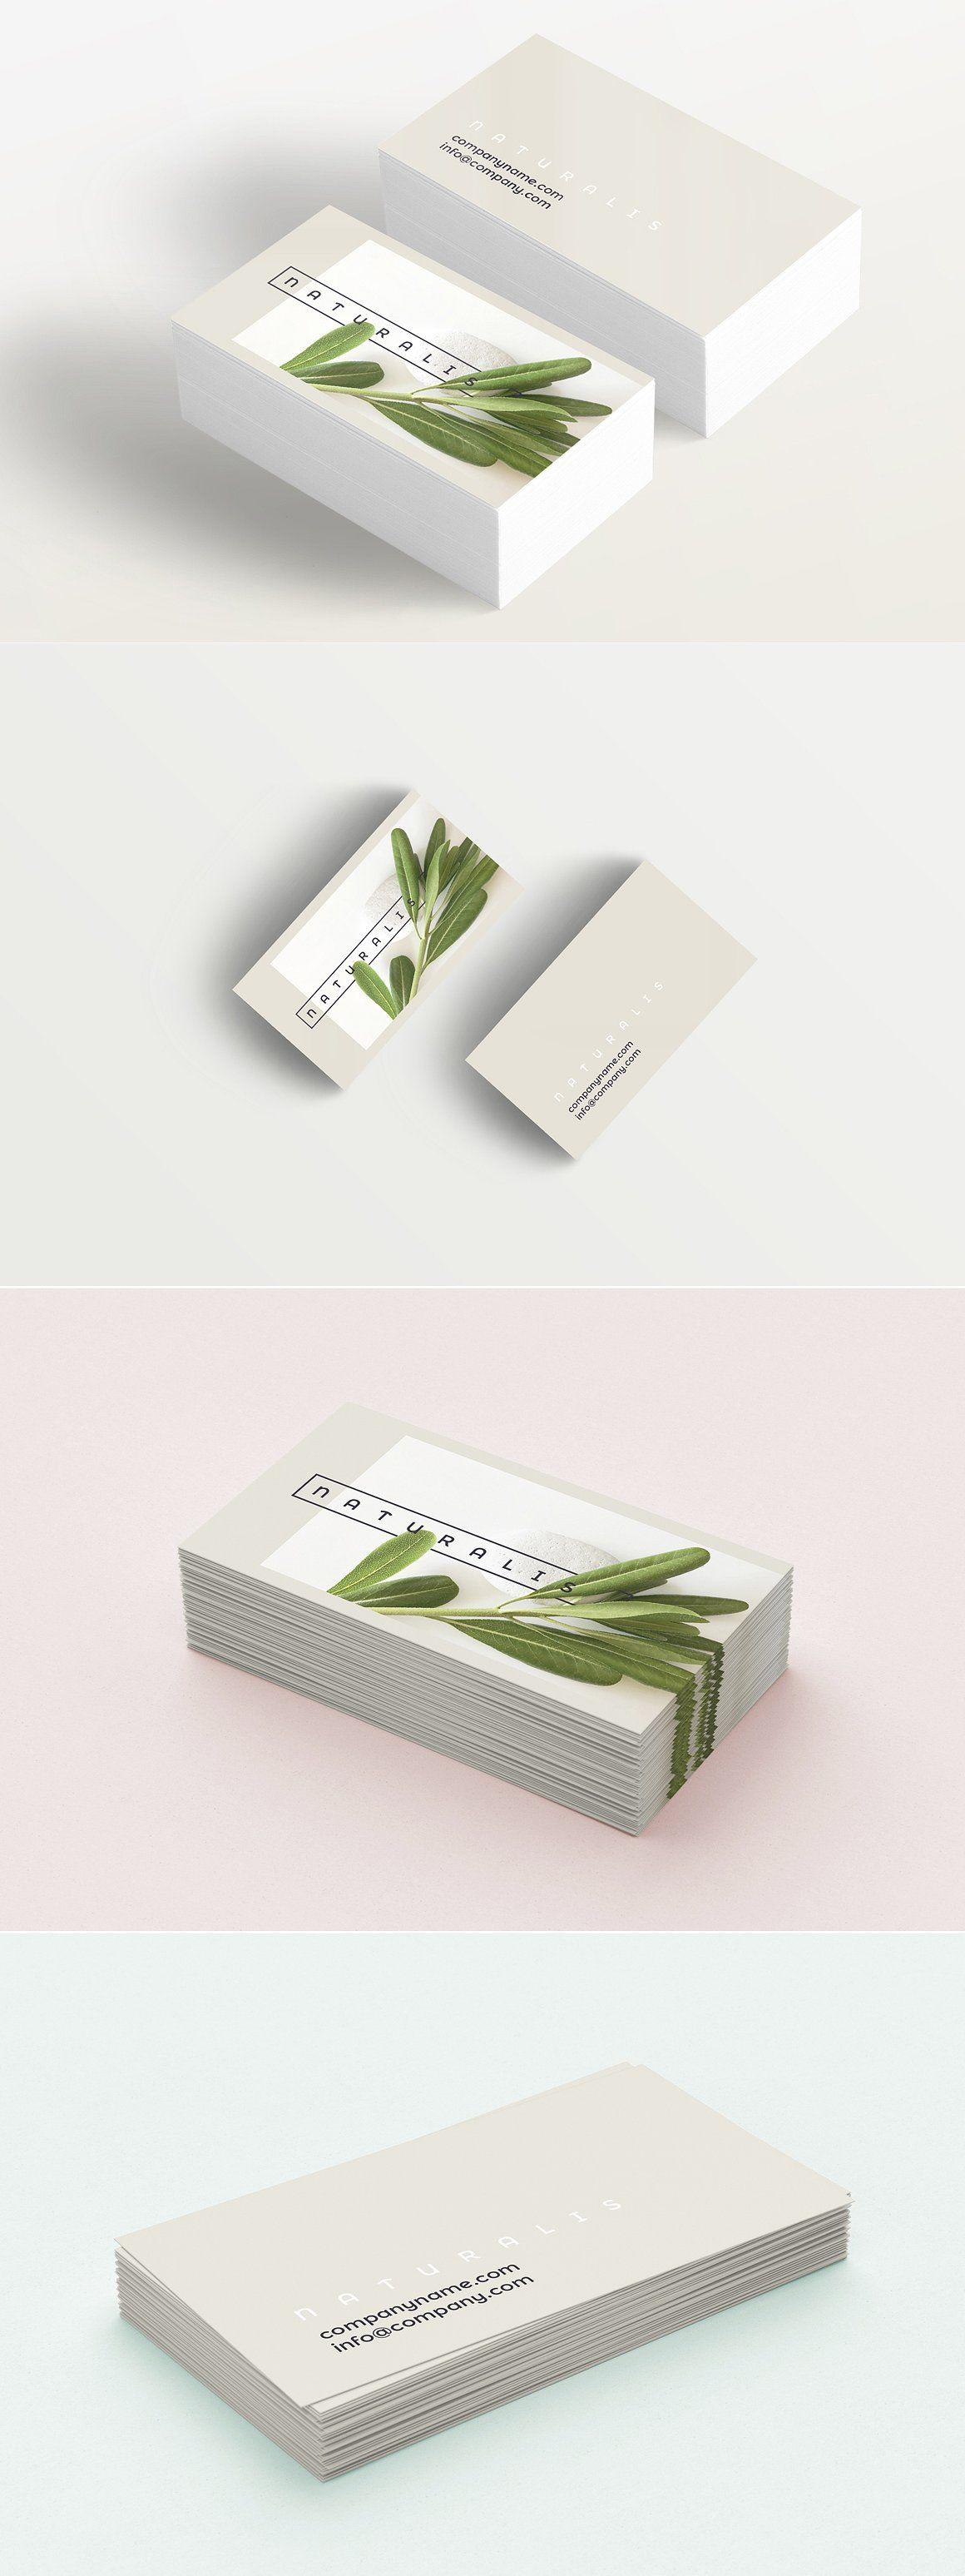 Natural greens business card elegant business card template that natural greens business card elegant business card template that will be perfect for anyone working free printable reheart Images